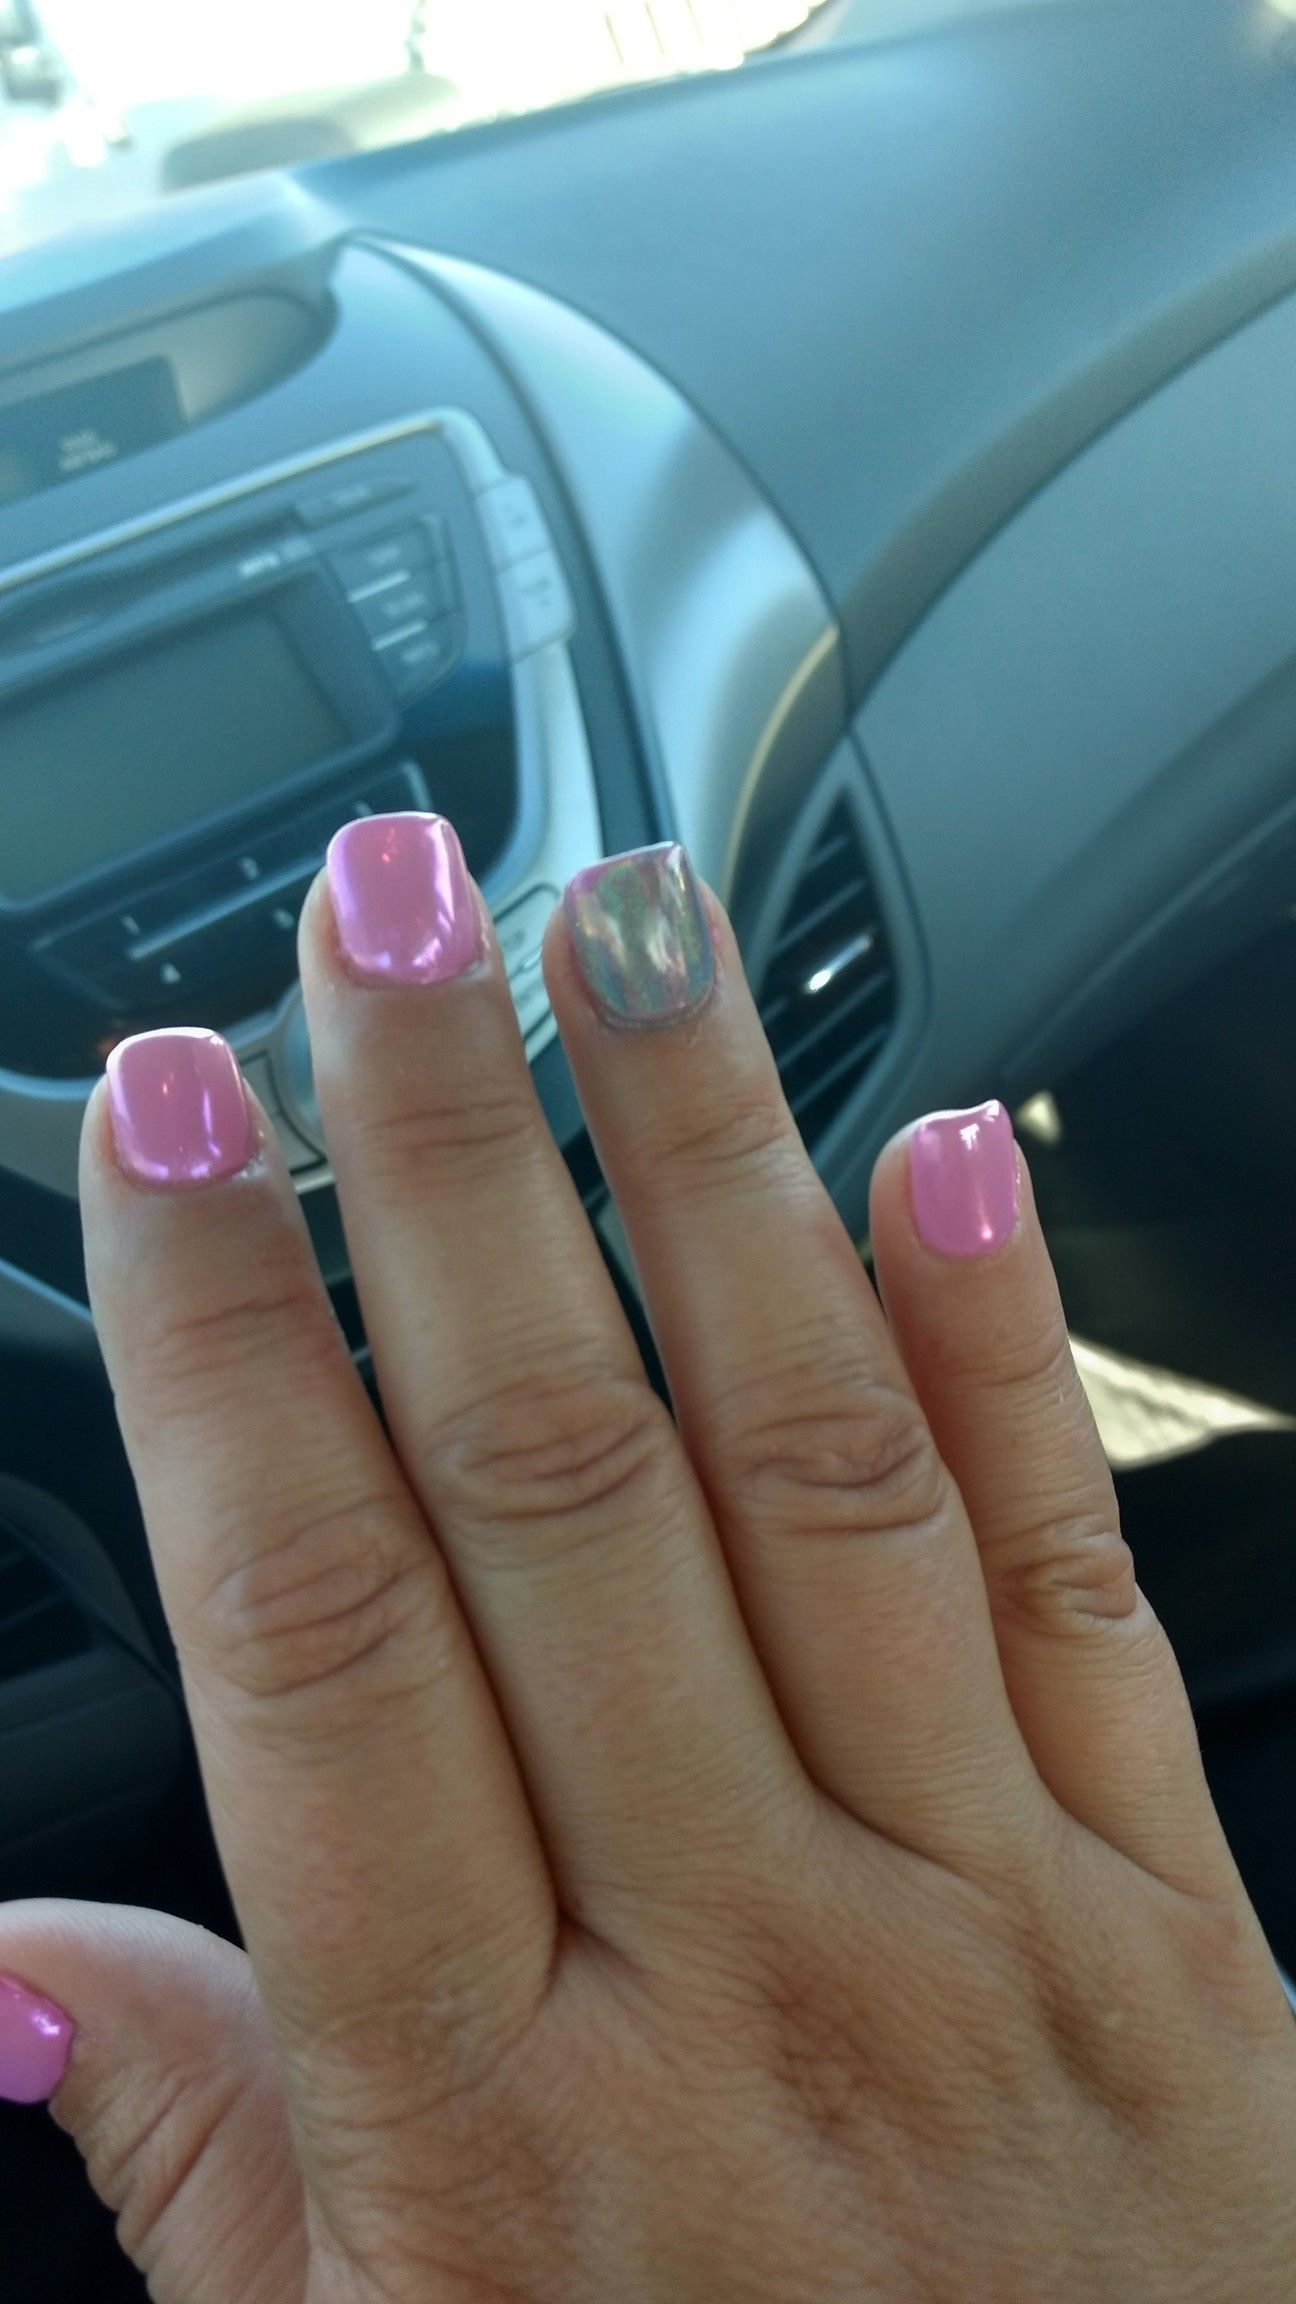 Hologram nails by Q at Unique Nails & Spa in Hesperia. (They look ...